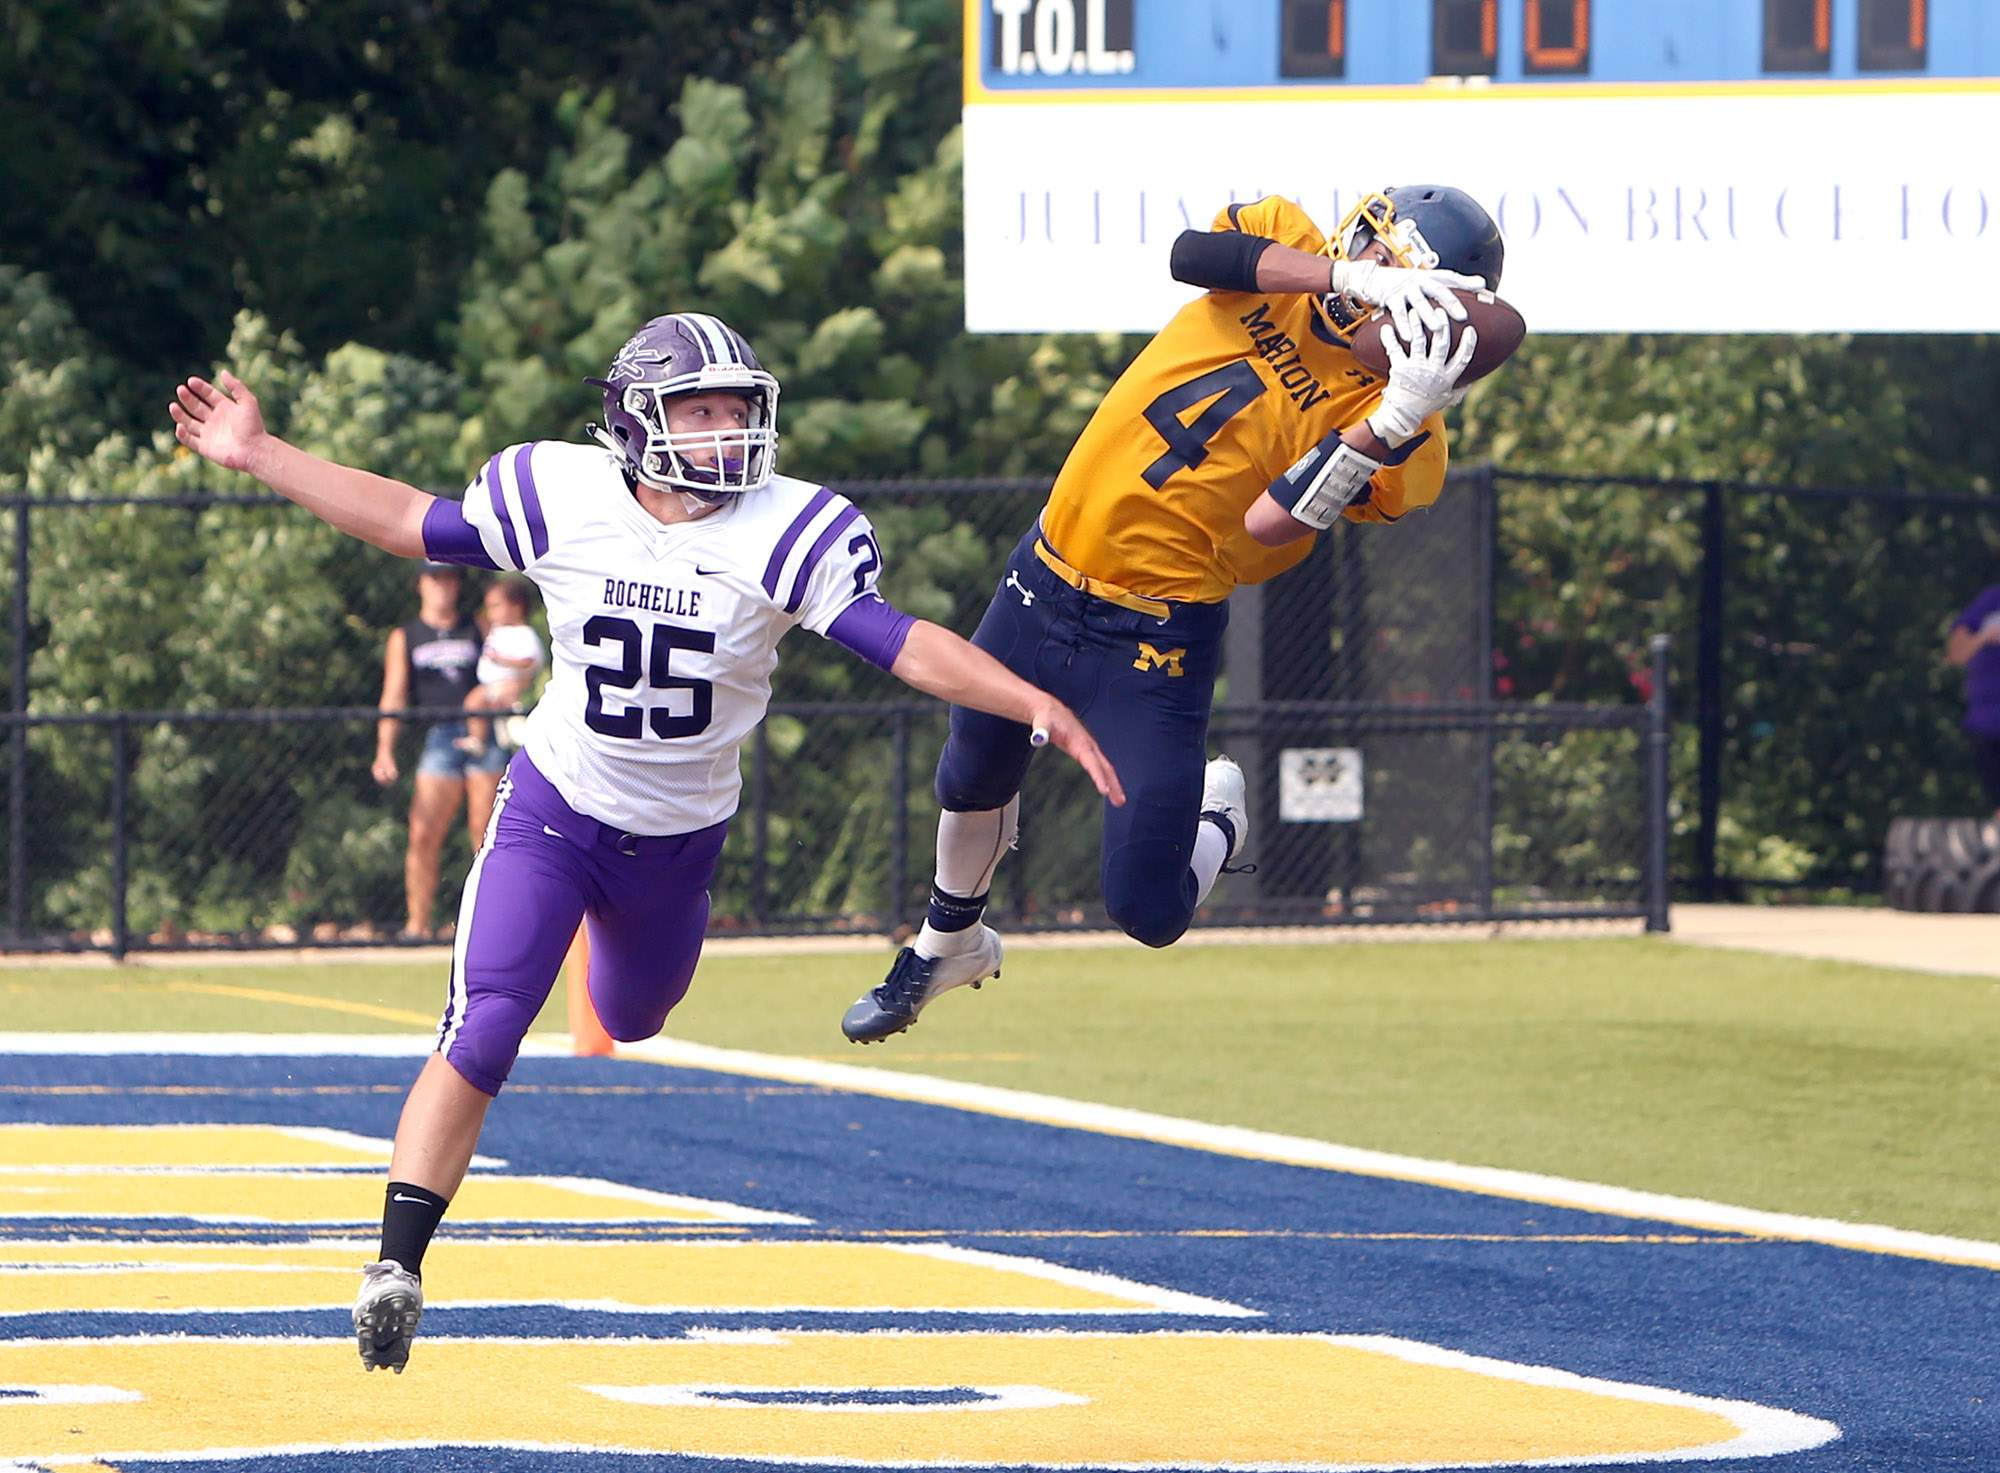 Dylan Kinell catches the game-winning touchdown in the final seconds Saturday.